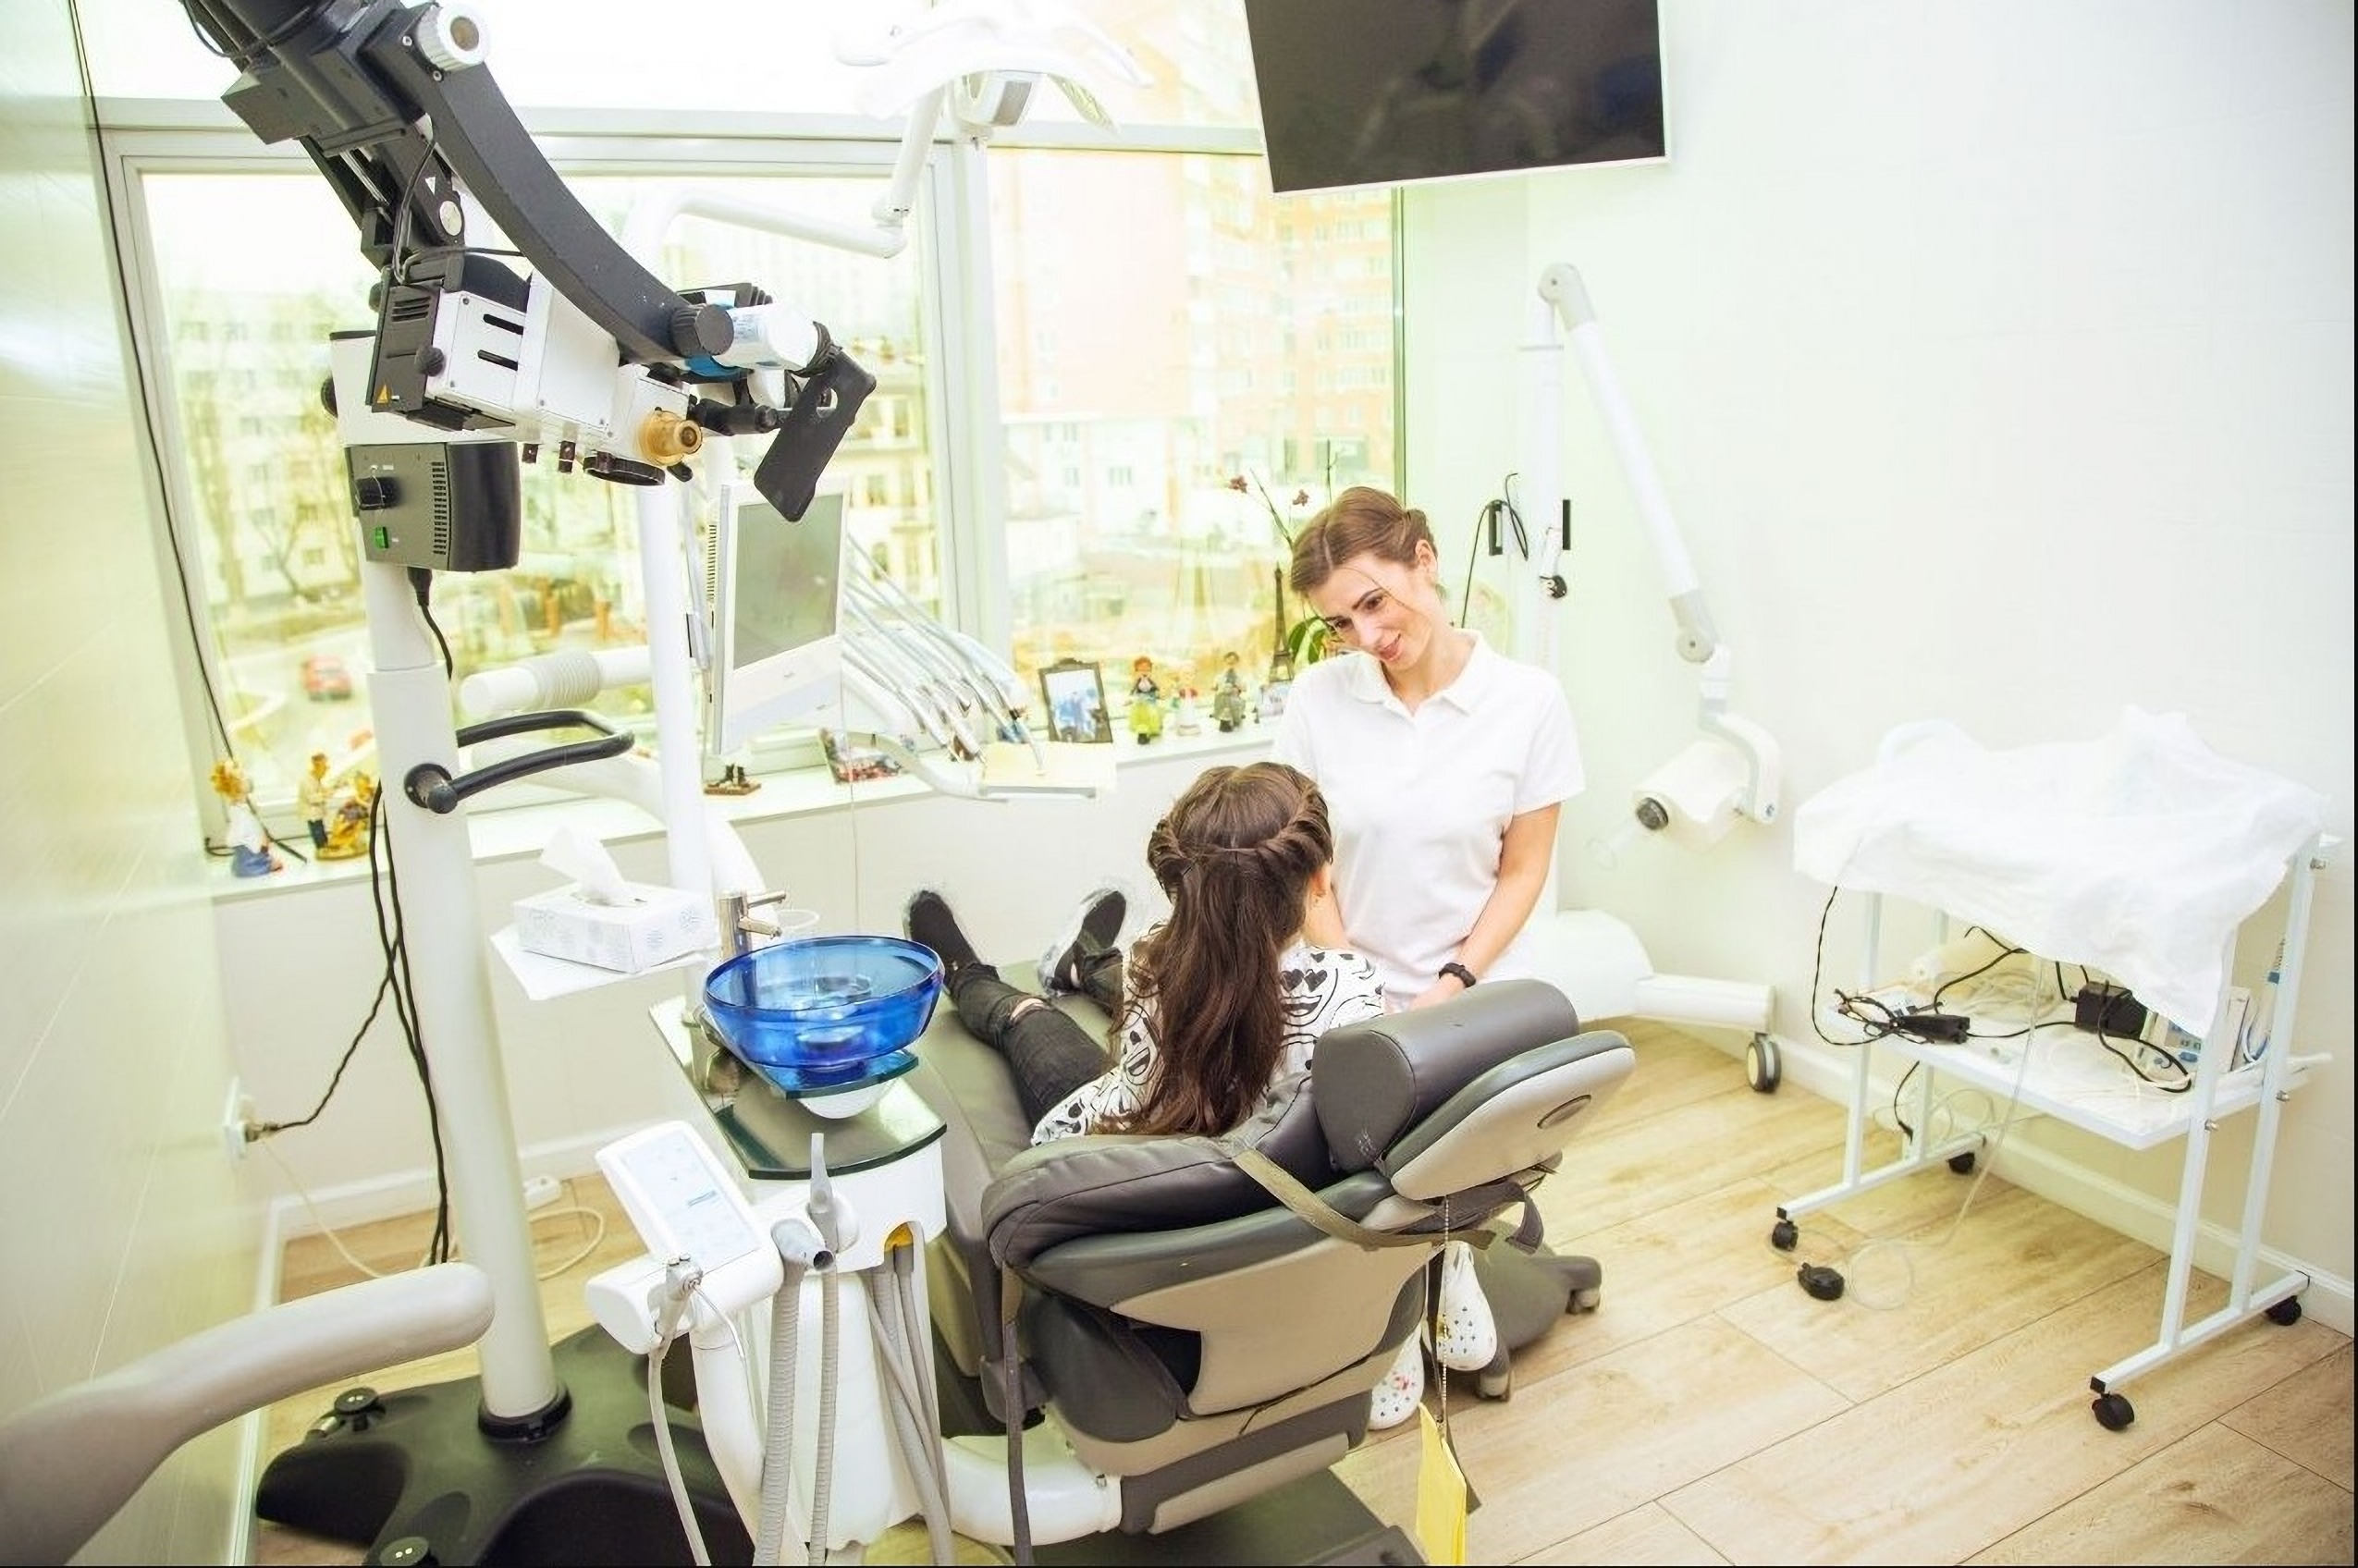 Dentist's appointment at the Misto Dent Clinic